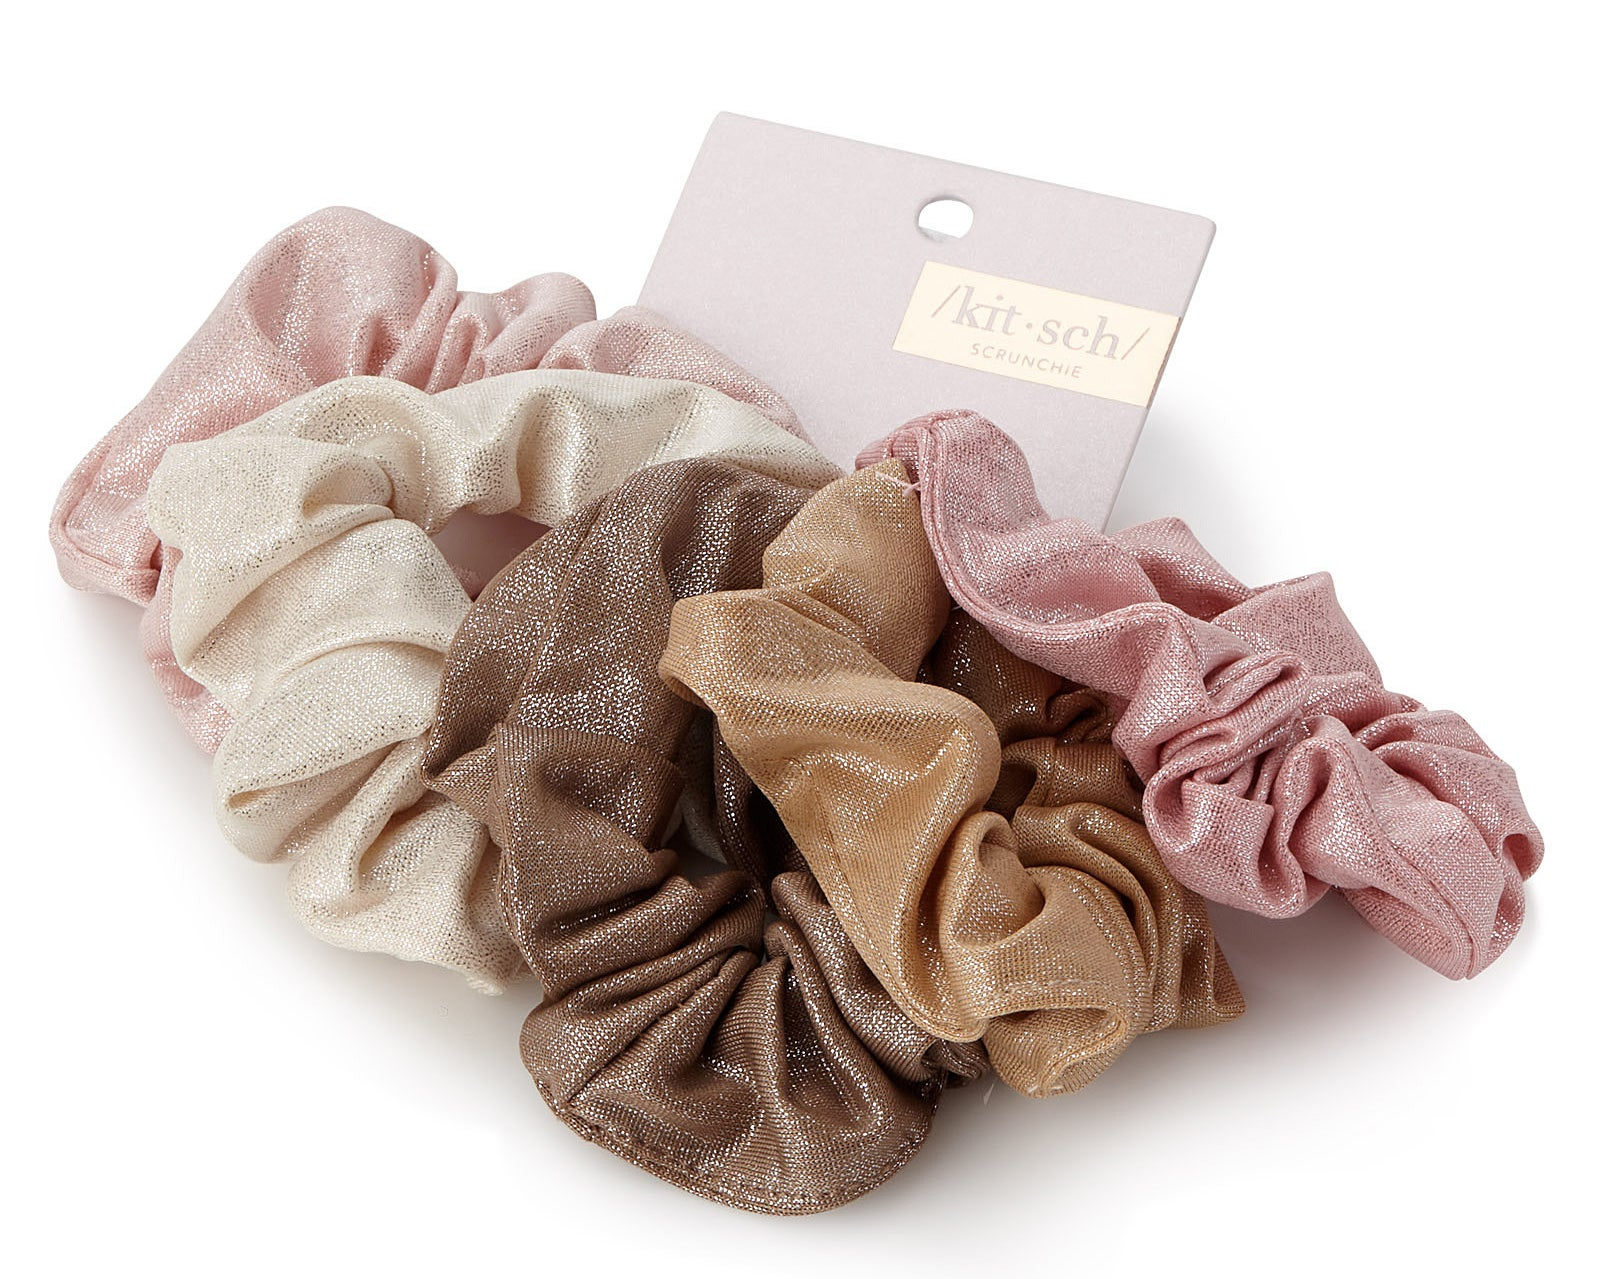 Five scrunchies with a faint shine held together by packaging